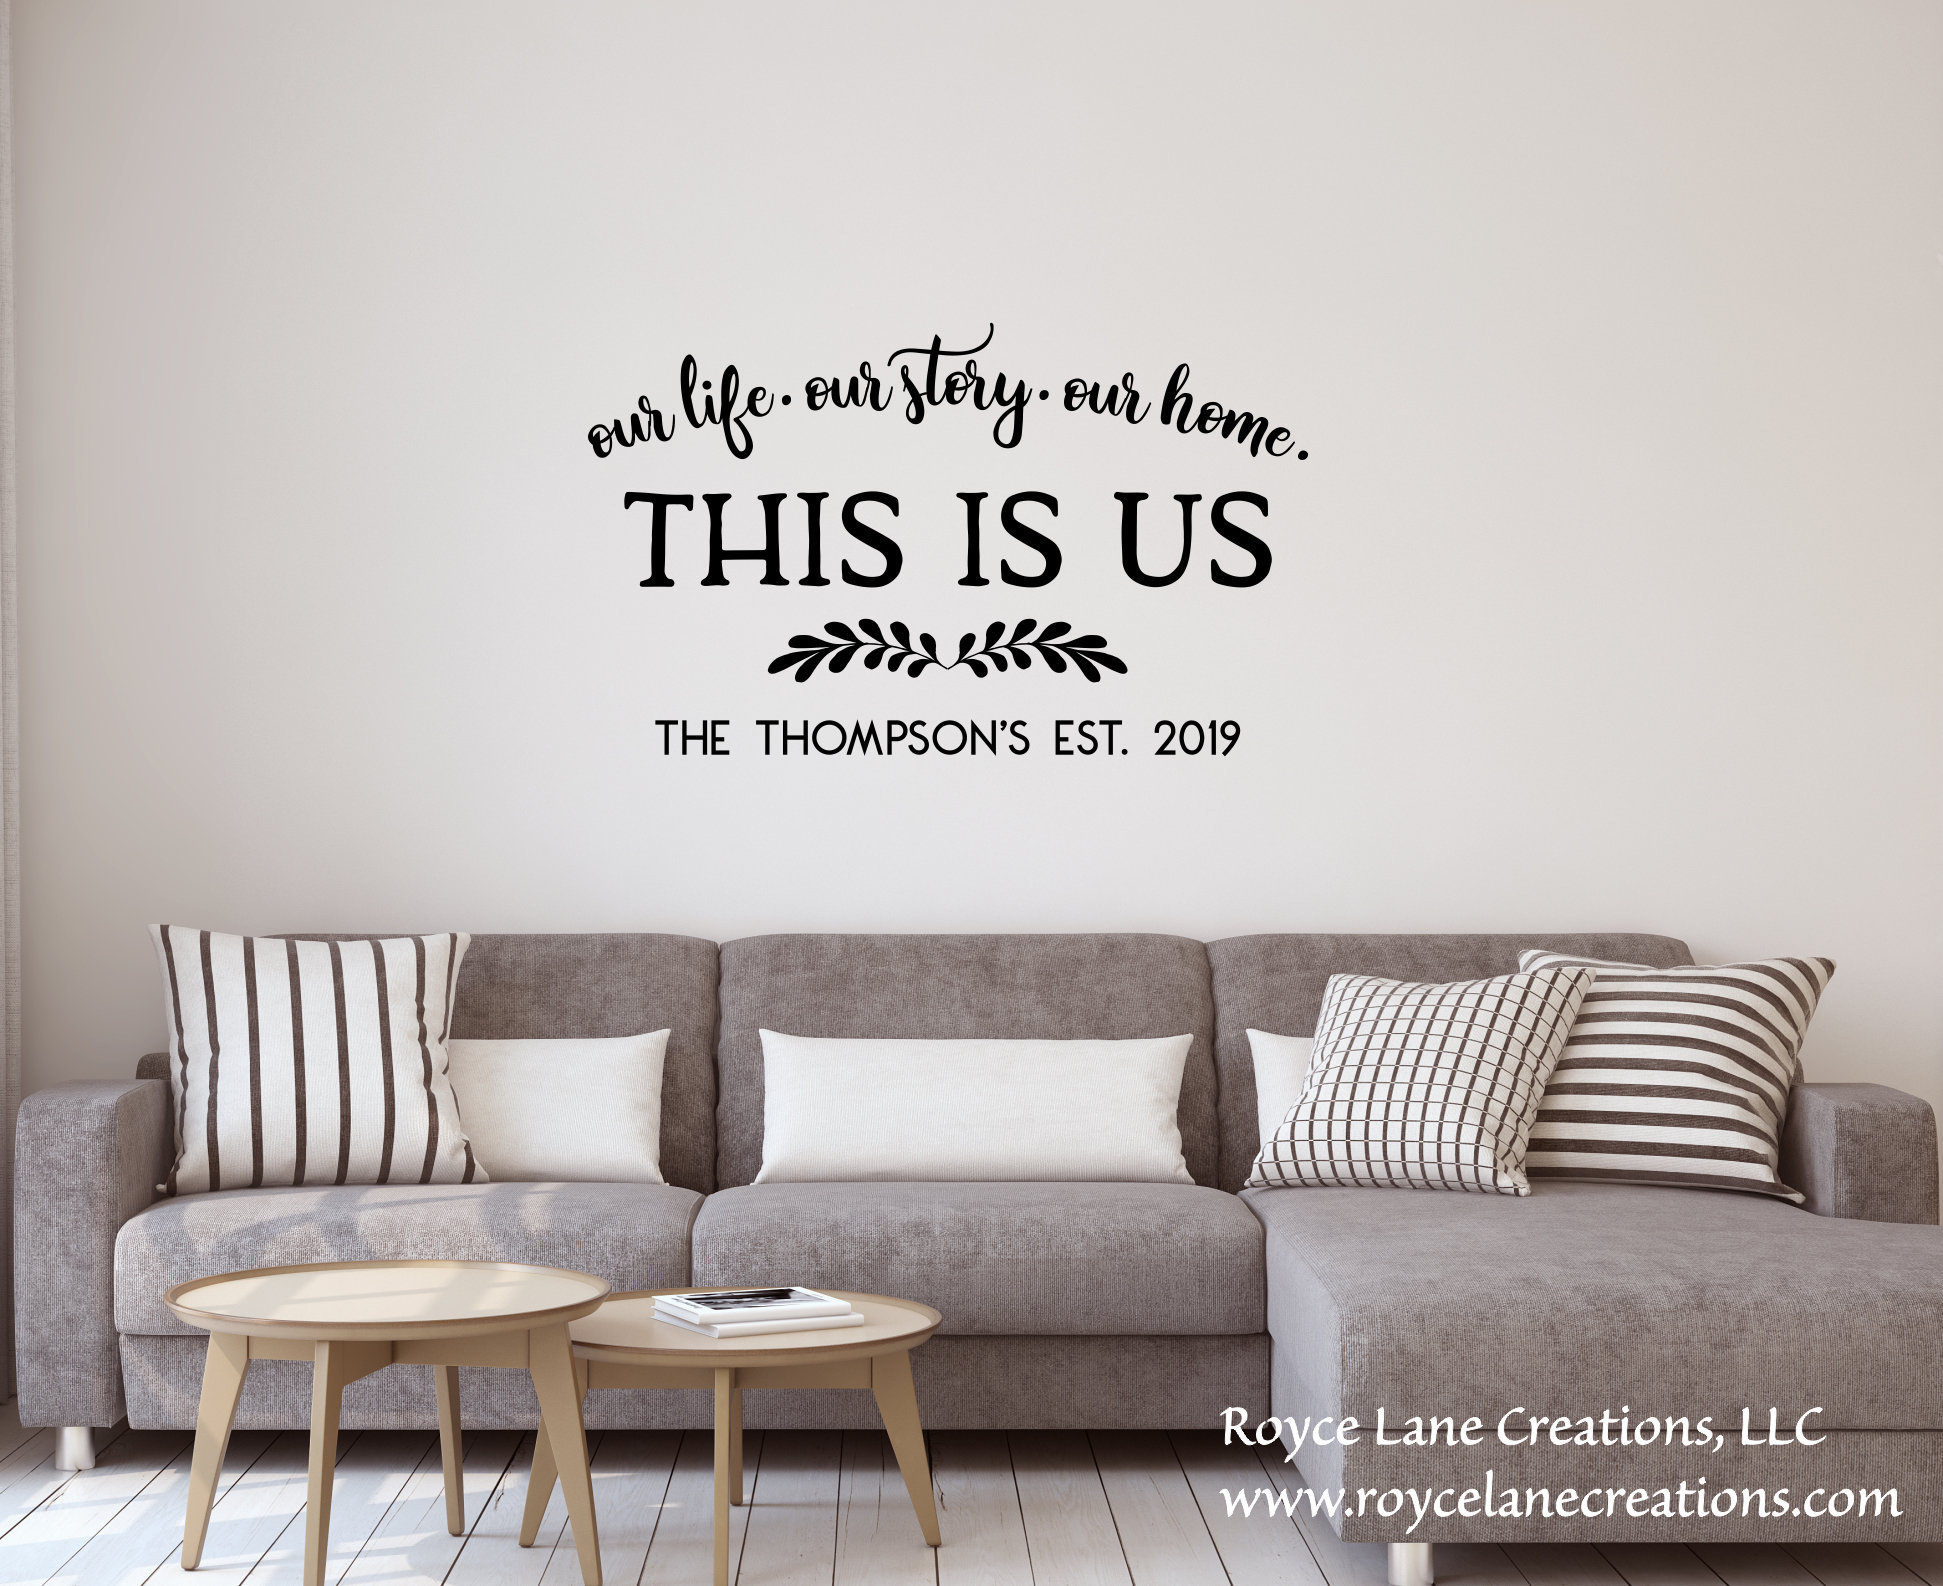 Etsy Intended For Widely Used This Is Us Wall Decor (View 14 of 20)